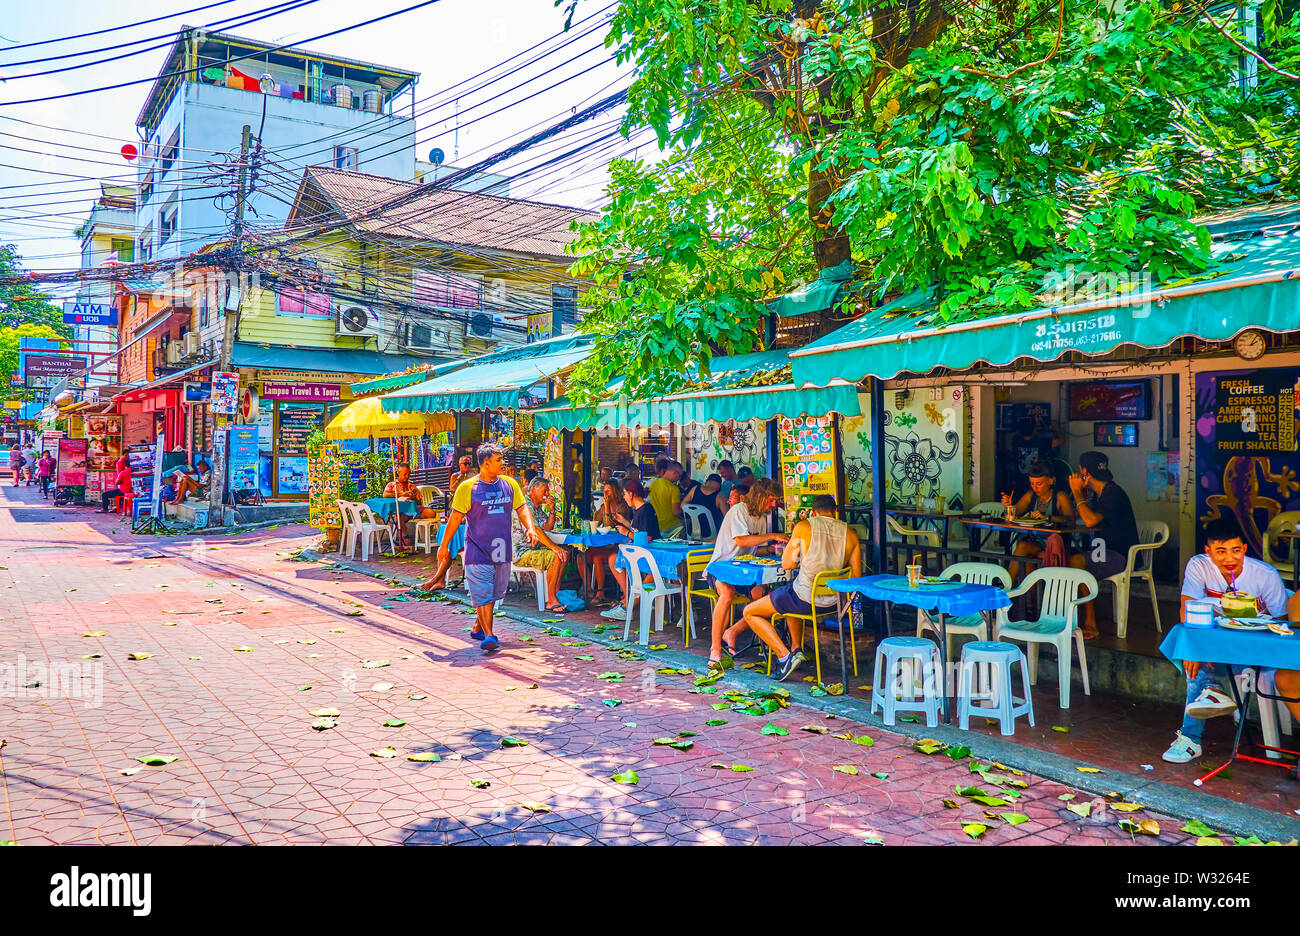 BANGKOK, THAILAND - APRIL 22, 2019: The popular outdoor cafe in Ram Buttri road offers cheap Thai food with great view on city life of tourist distric - Stock Image